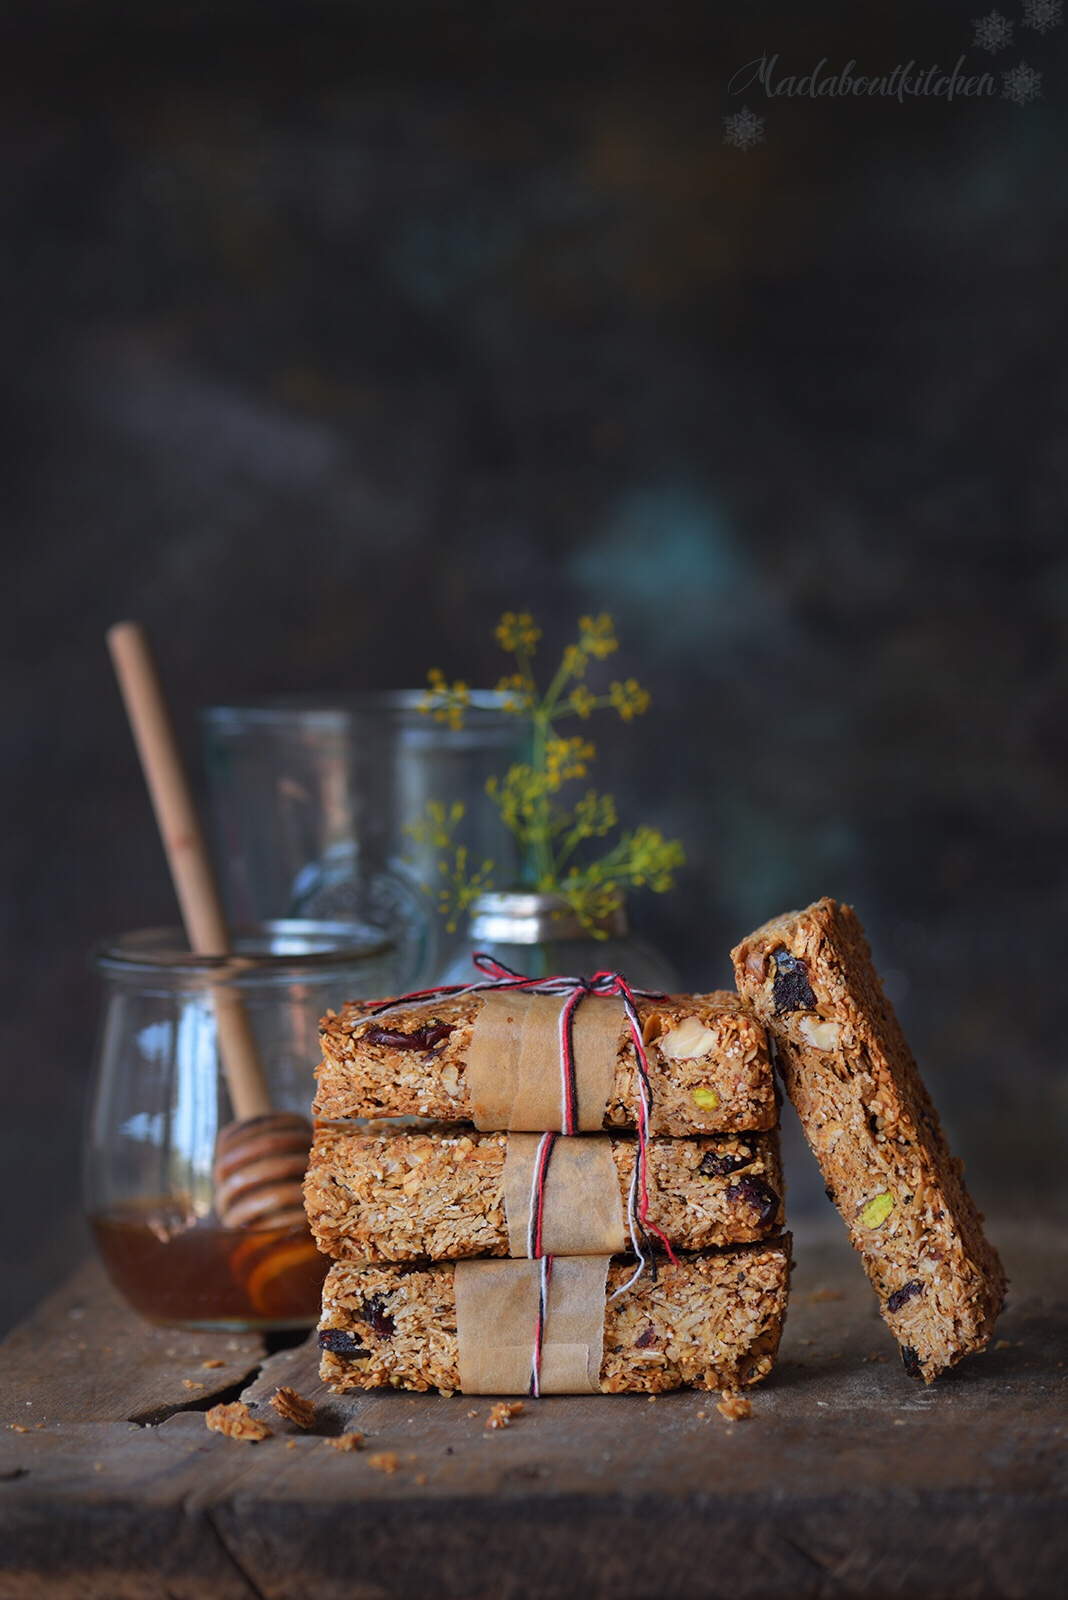 Make Homemade Granola bars with this simple, easy, foolproof recipe. Granola Bars are one of the healthy snacks you can have during the day. The perfect energy bars you can have before and after your workout.